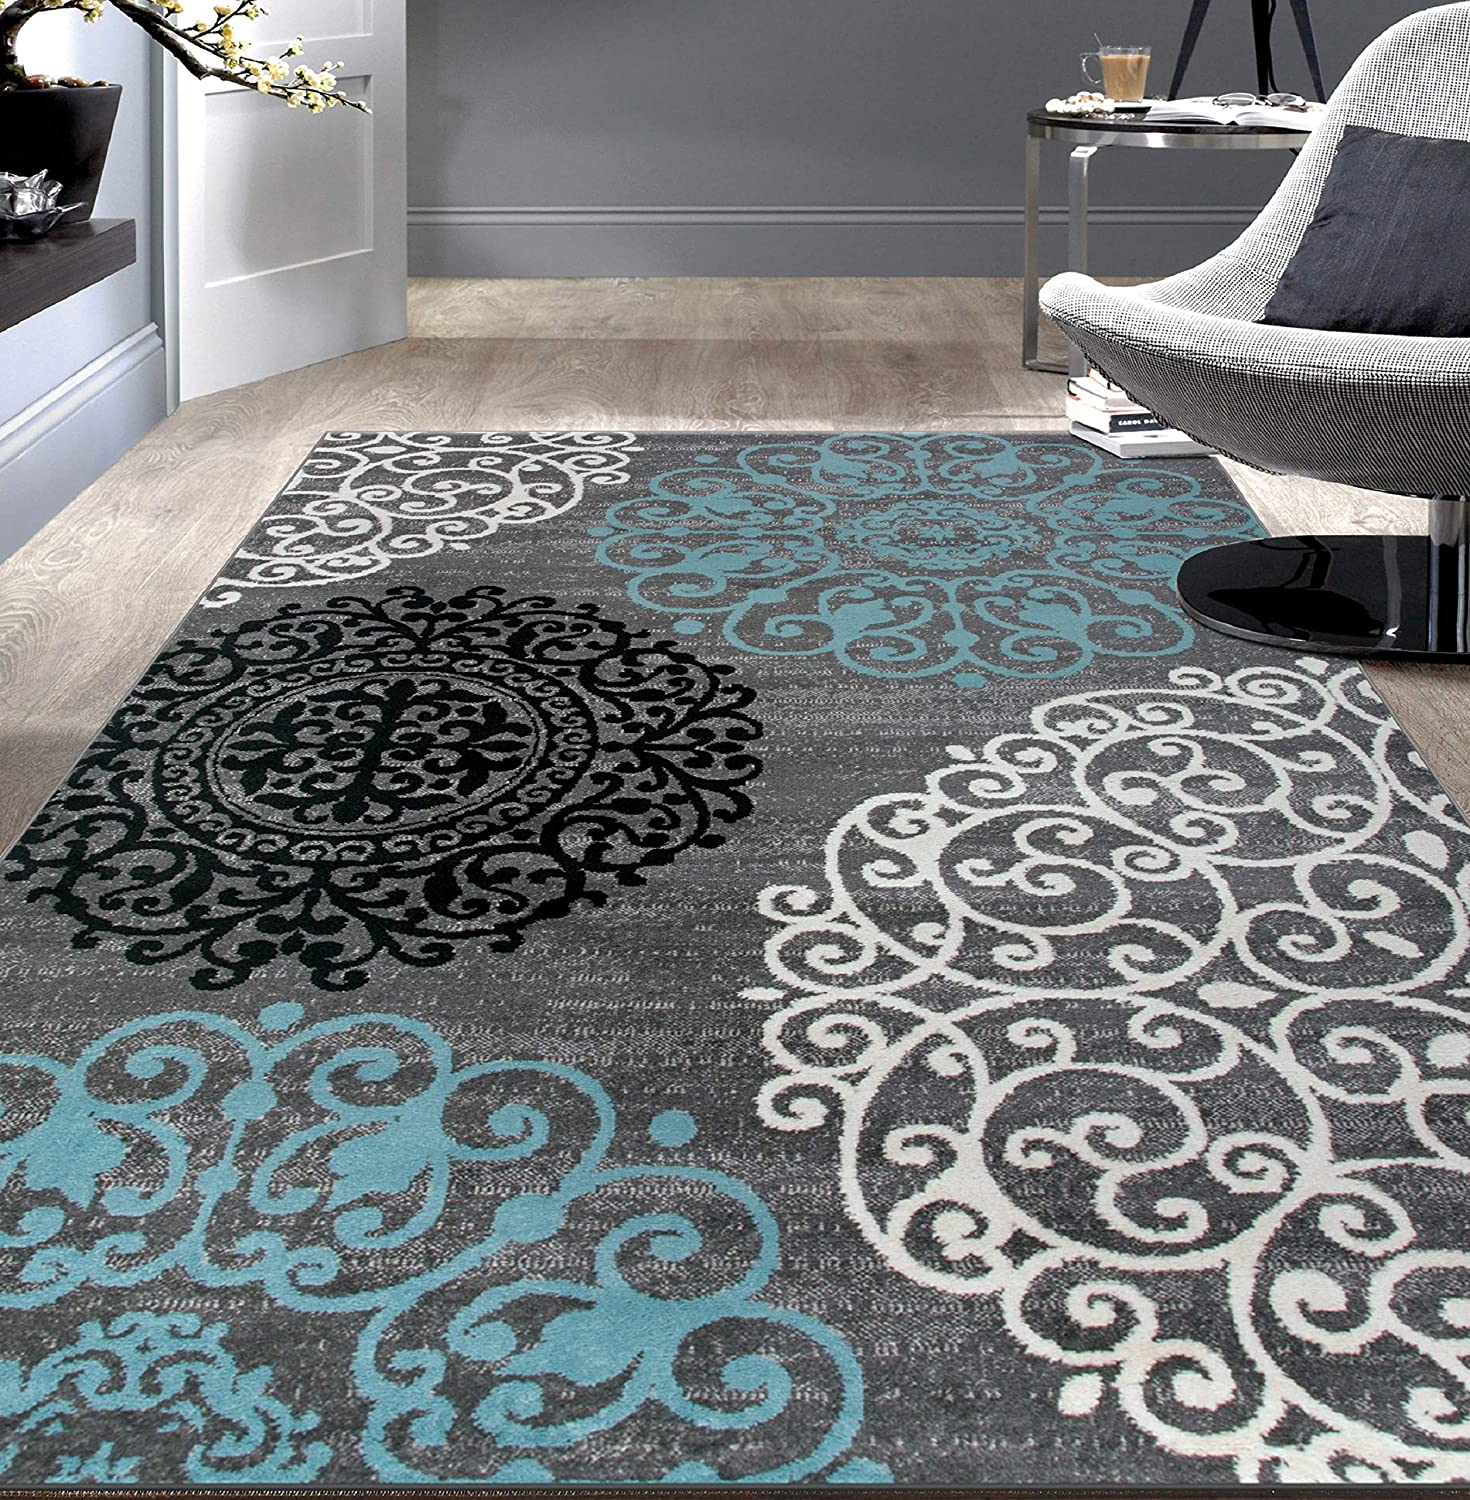 Rugshop Contemporary Modern Floral Area Rug 6'6